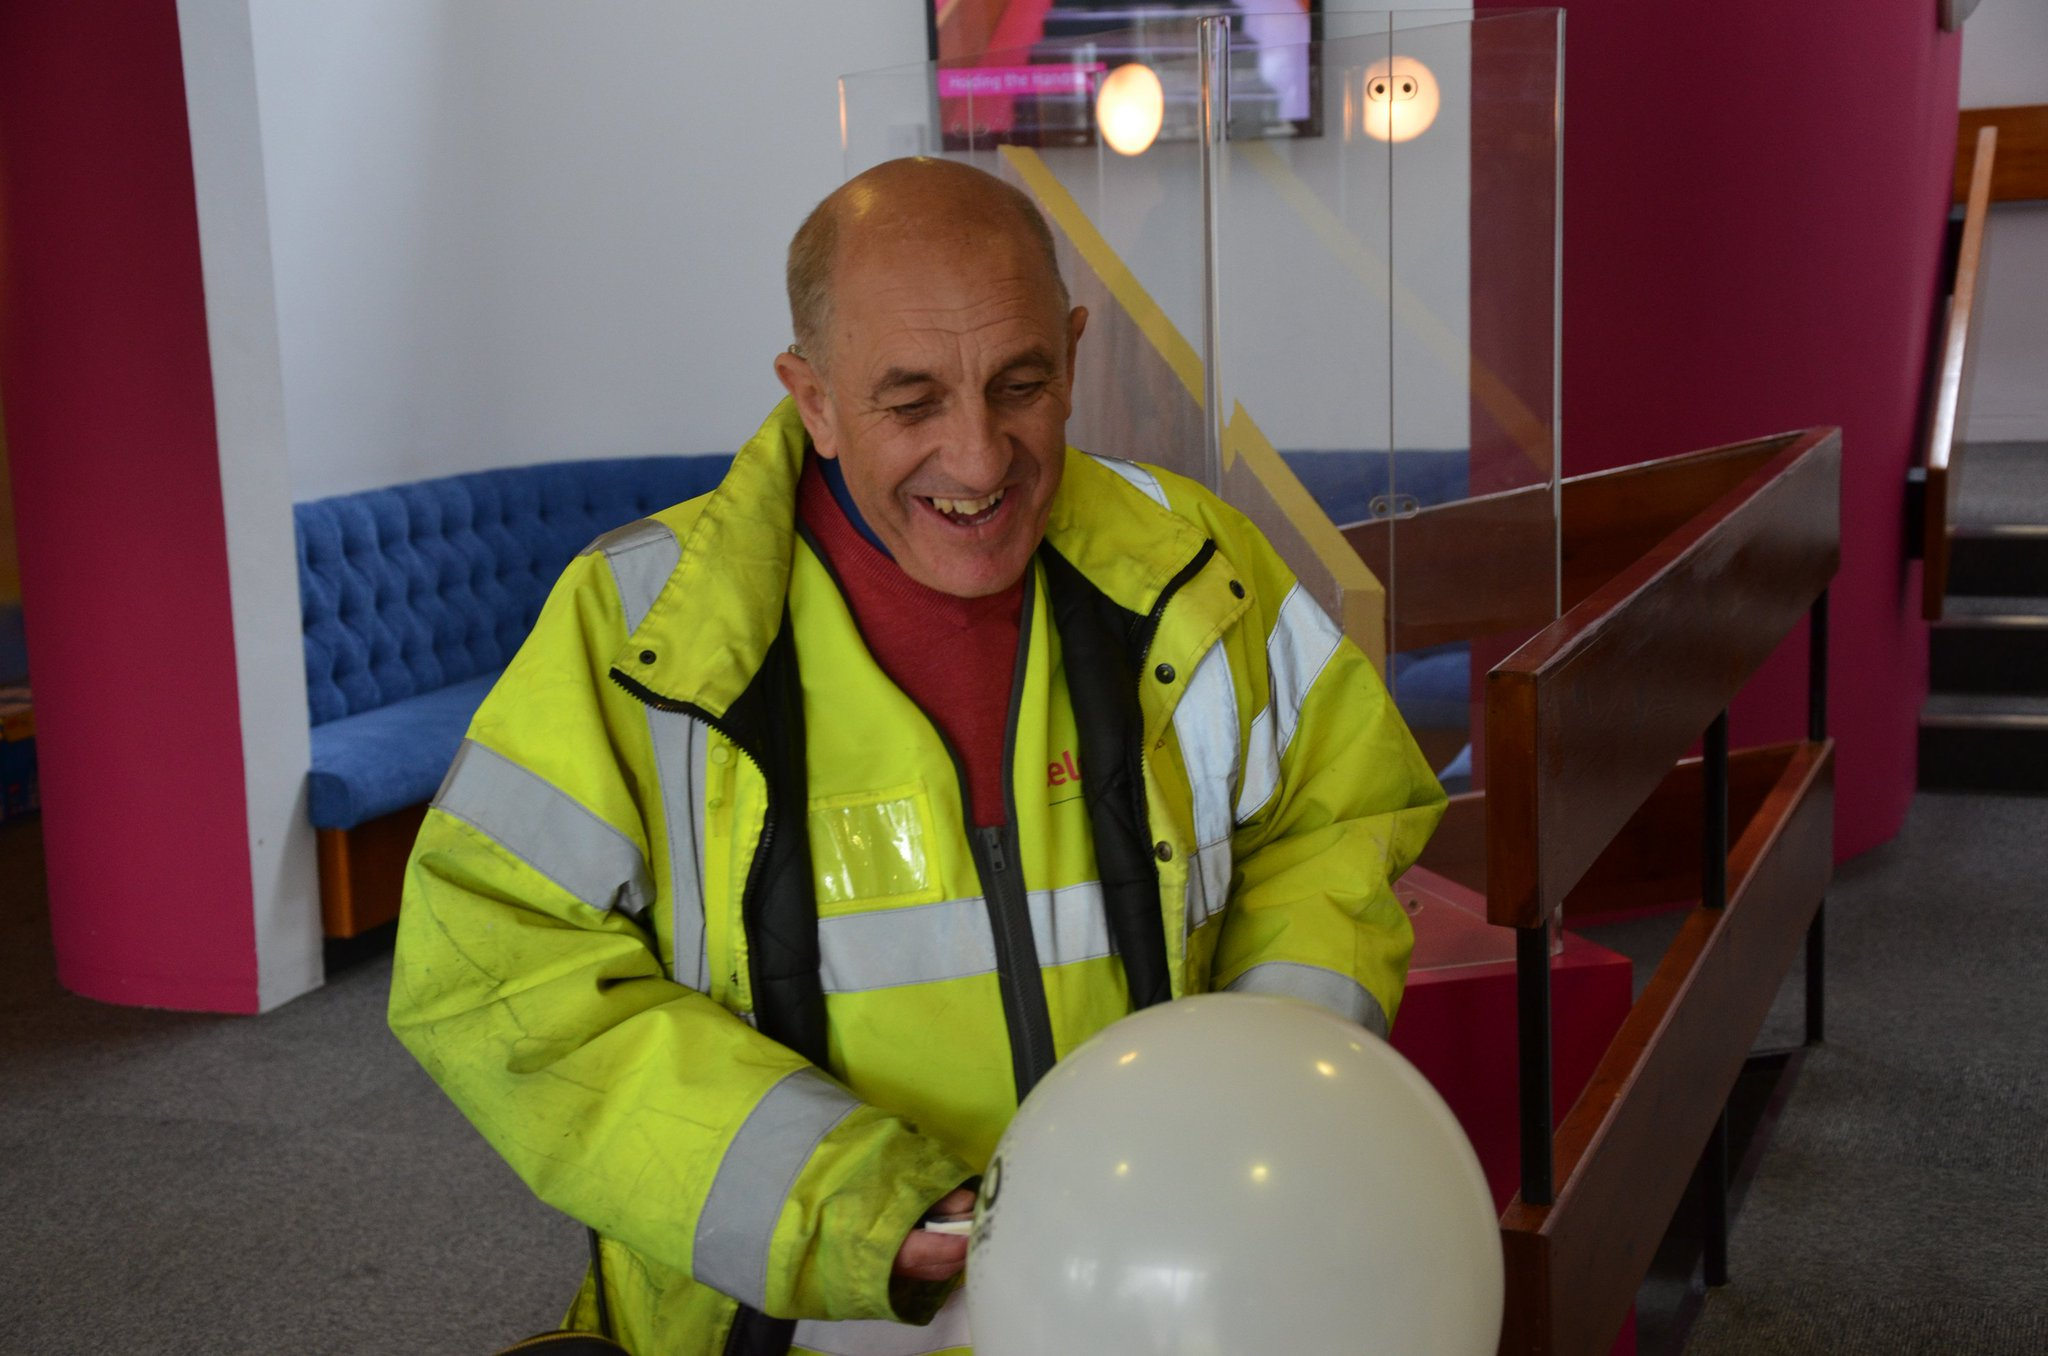 Happy 60th birthday (for Monday) to a Celotex legend, Stan, who is the friendly & happy face at our gatehouse https://t.co/8pc6qUV069